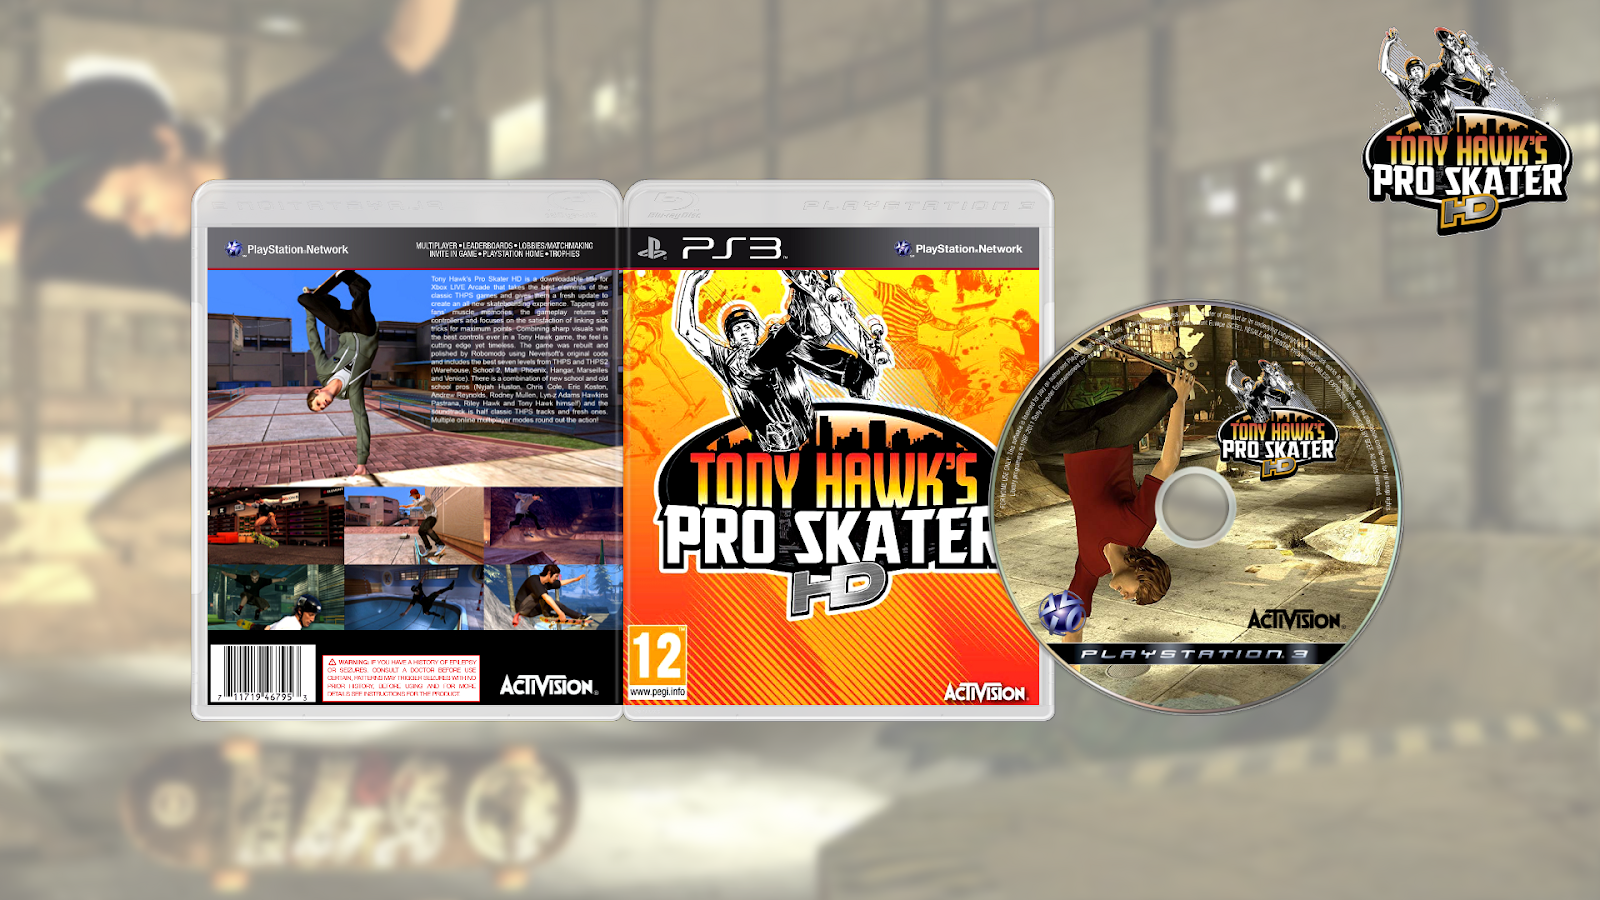 By Stereo Masters Online || Tony Hawk Pro Skater 5 Ps3 Pkg